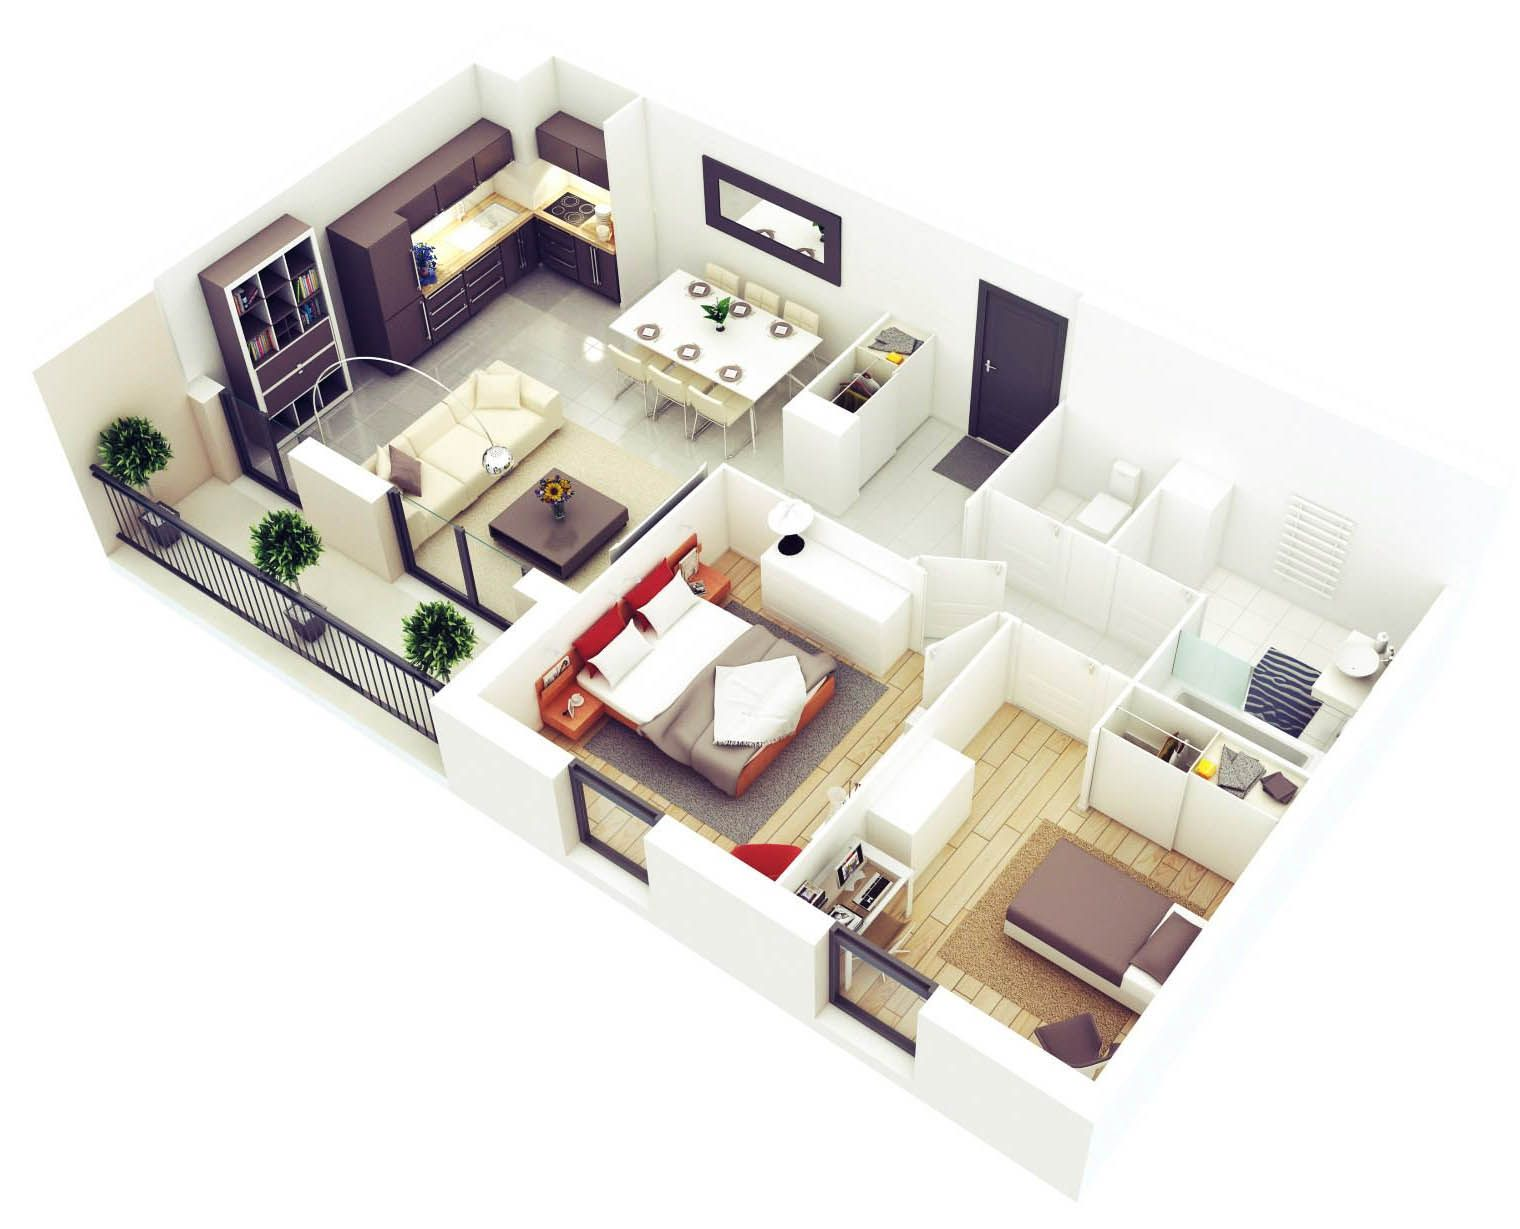 20 More 2 Bedroom 3D Floor Plans